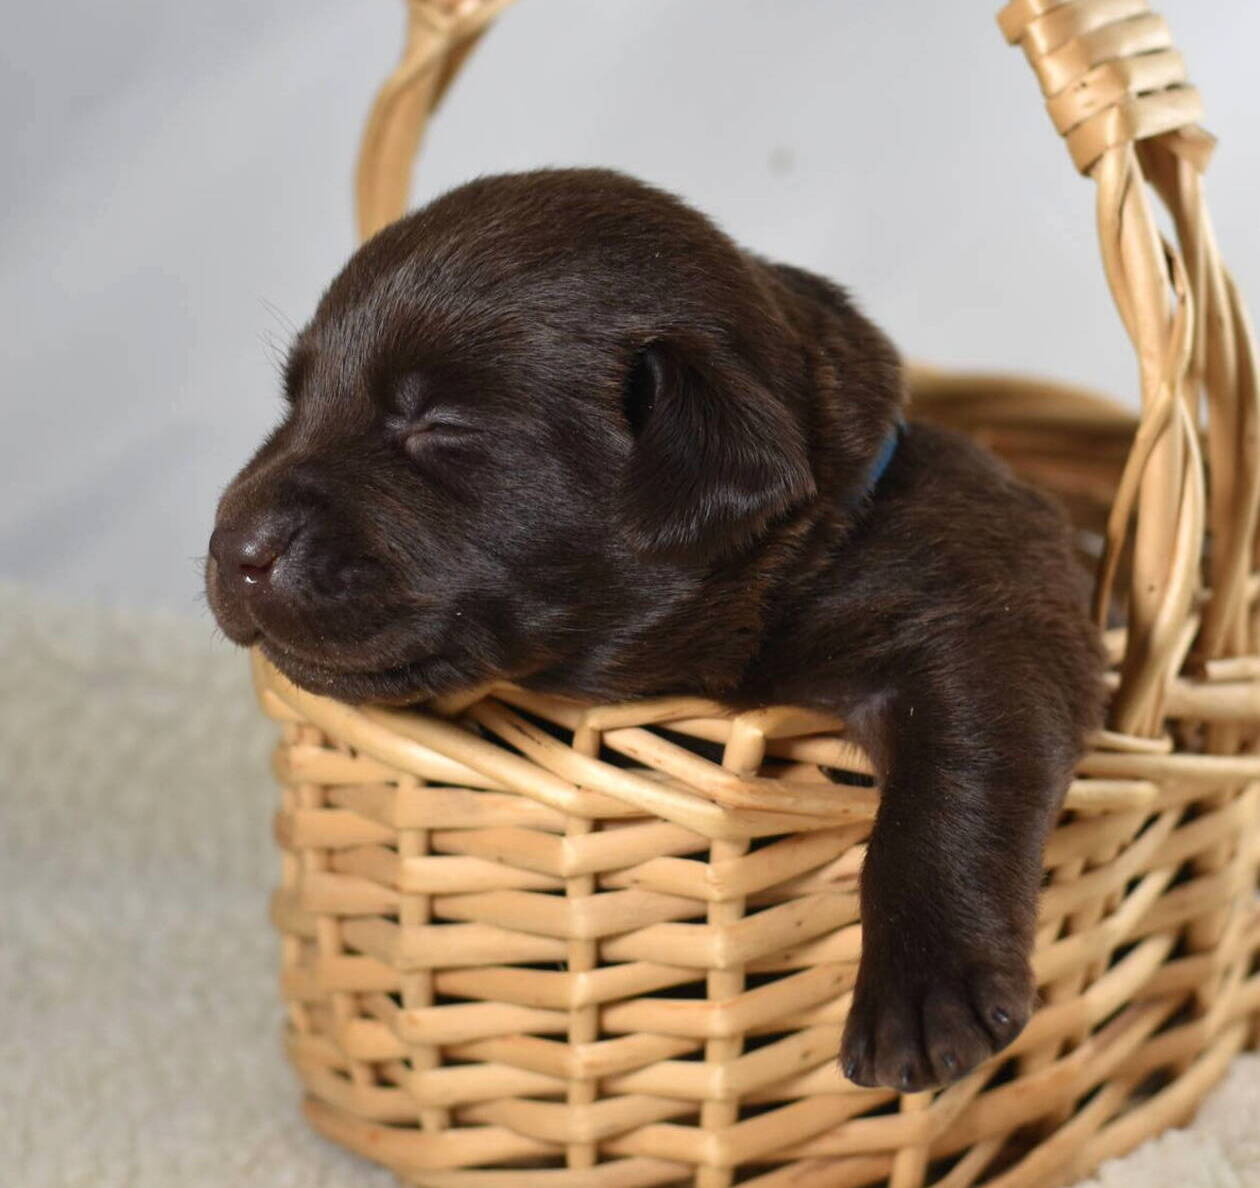 Litter 7-Chocolate labrador puppies13.JPG